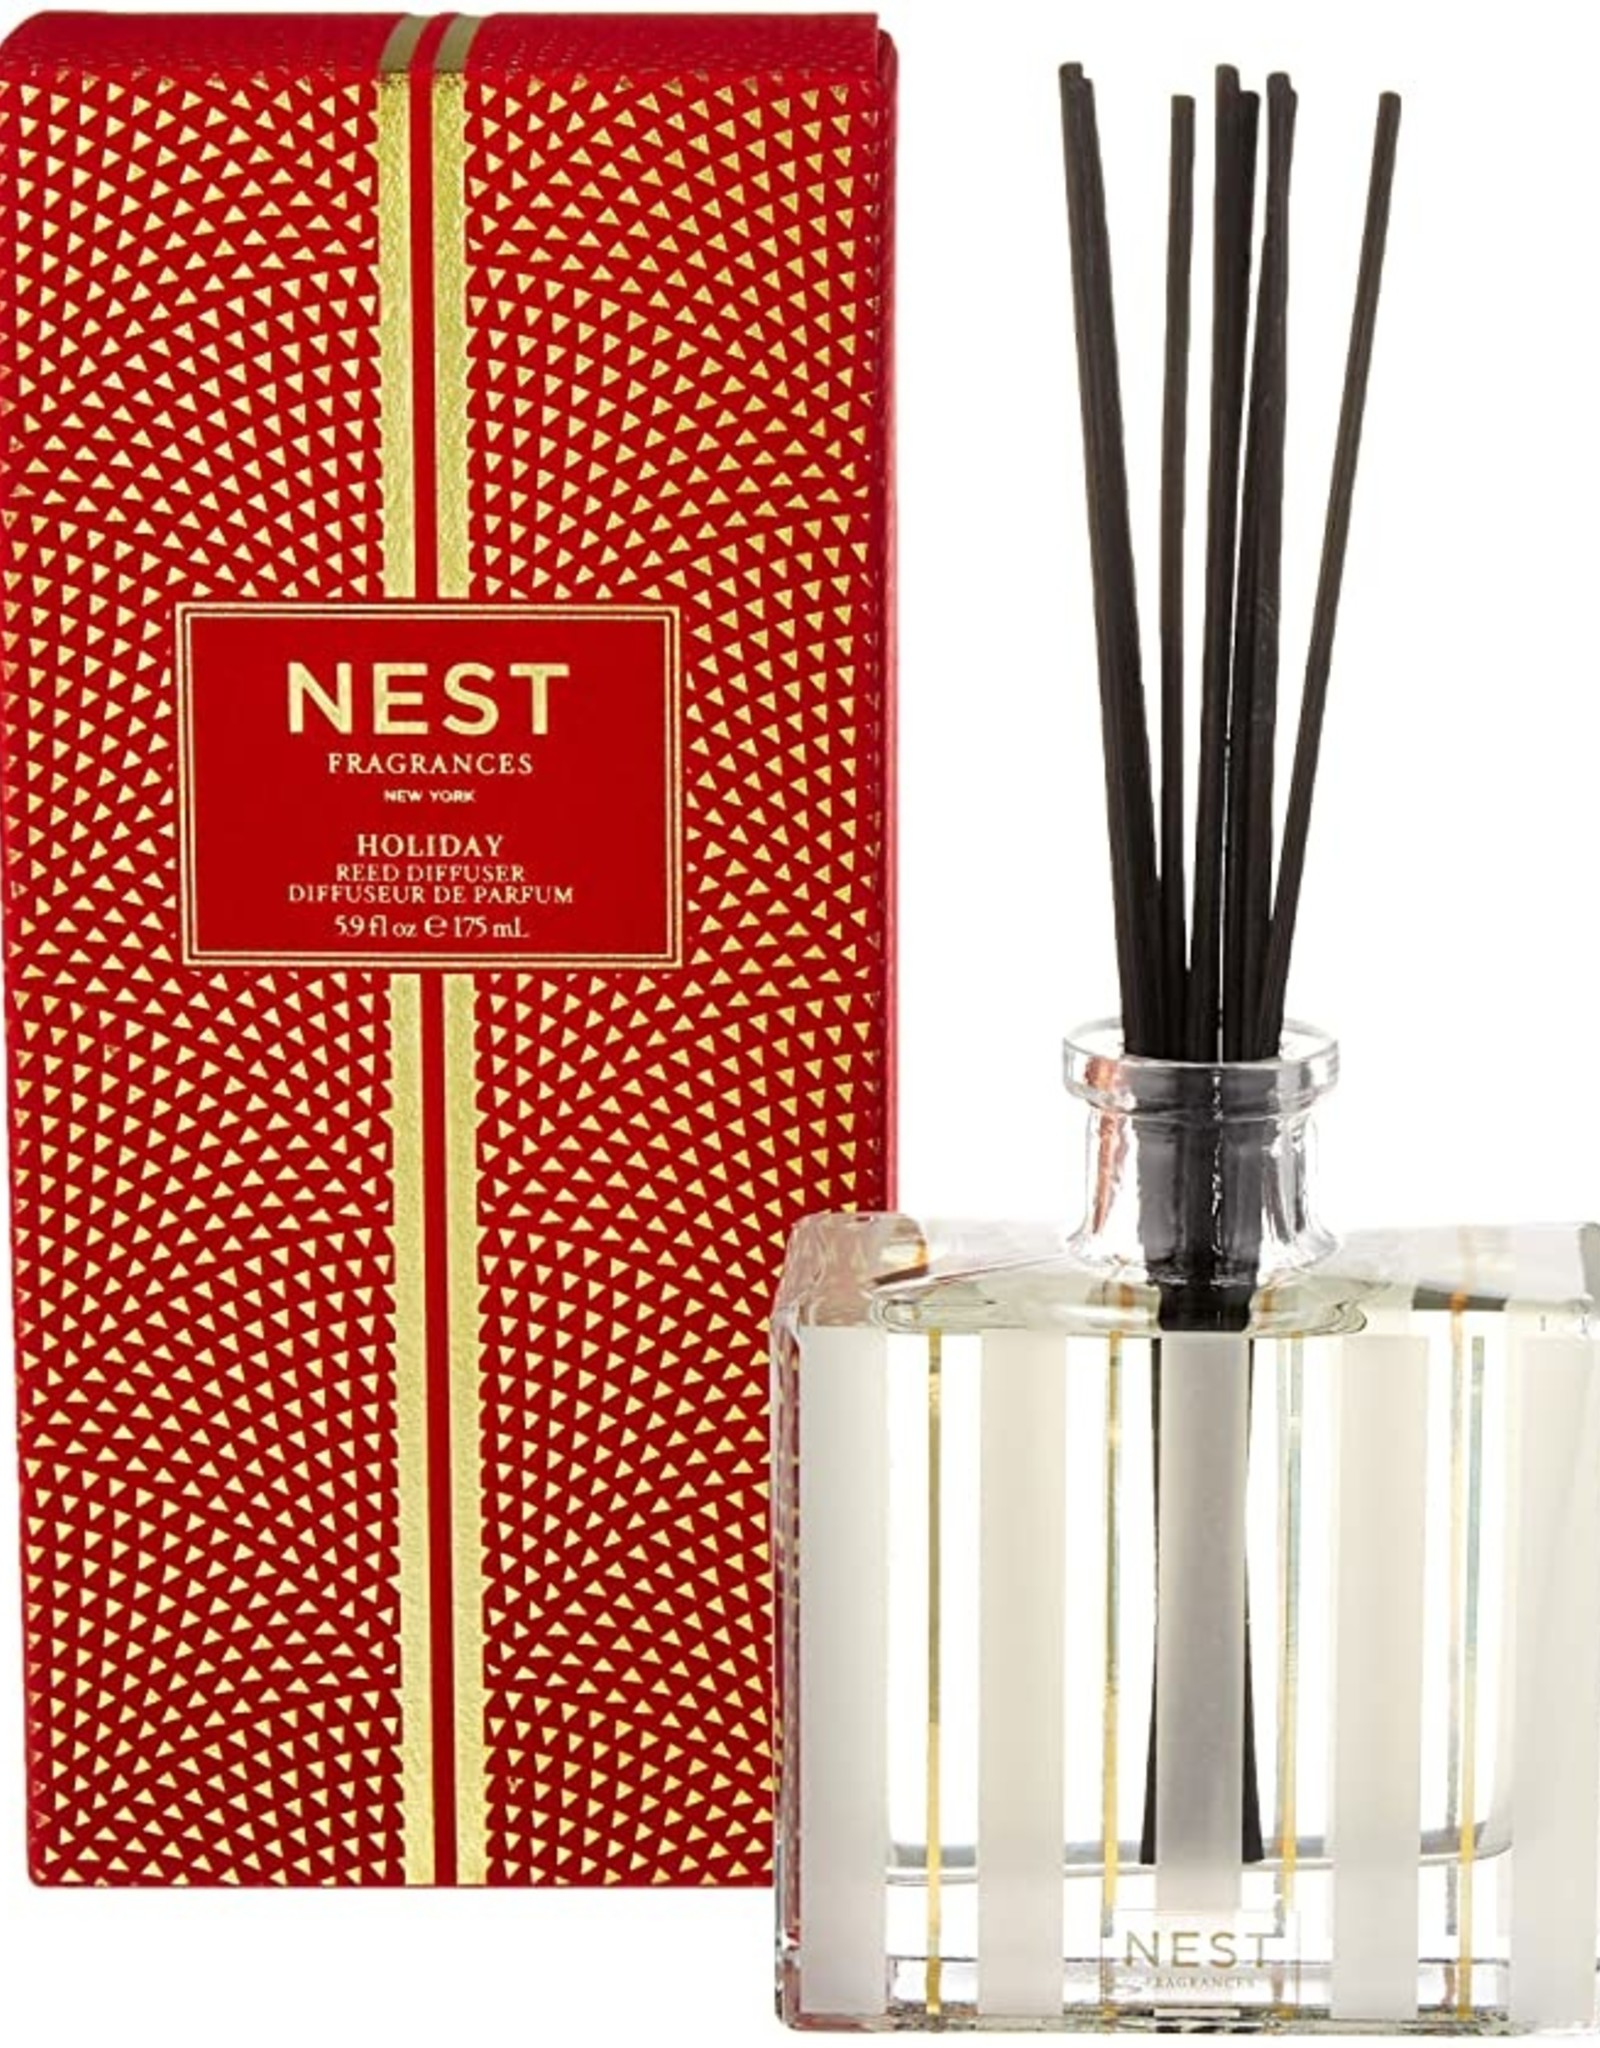 Nest Fragrances Holiday  Diffuser